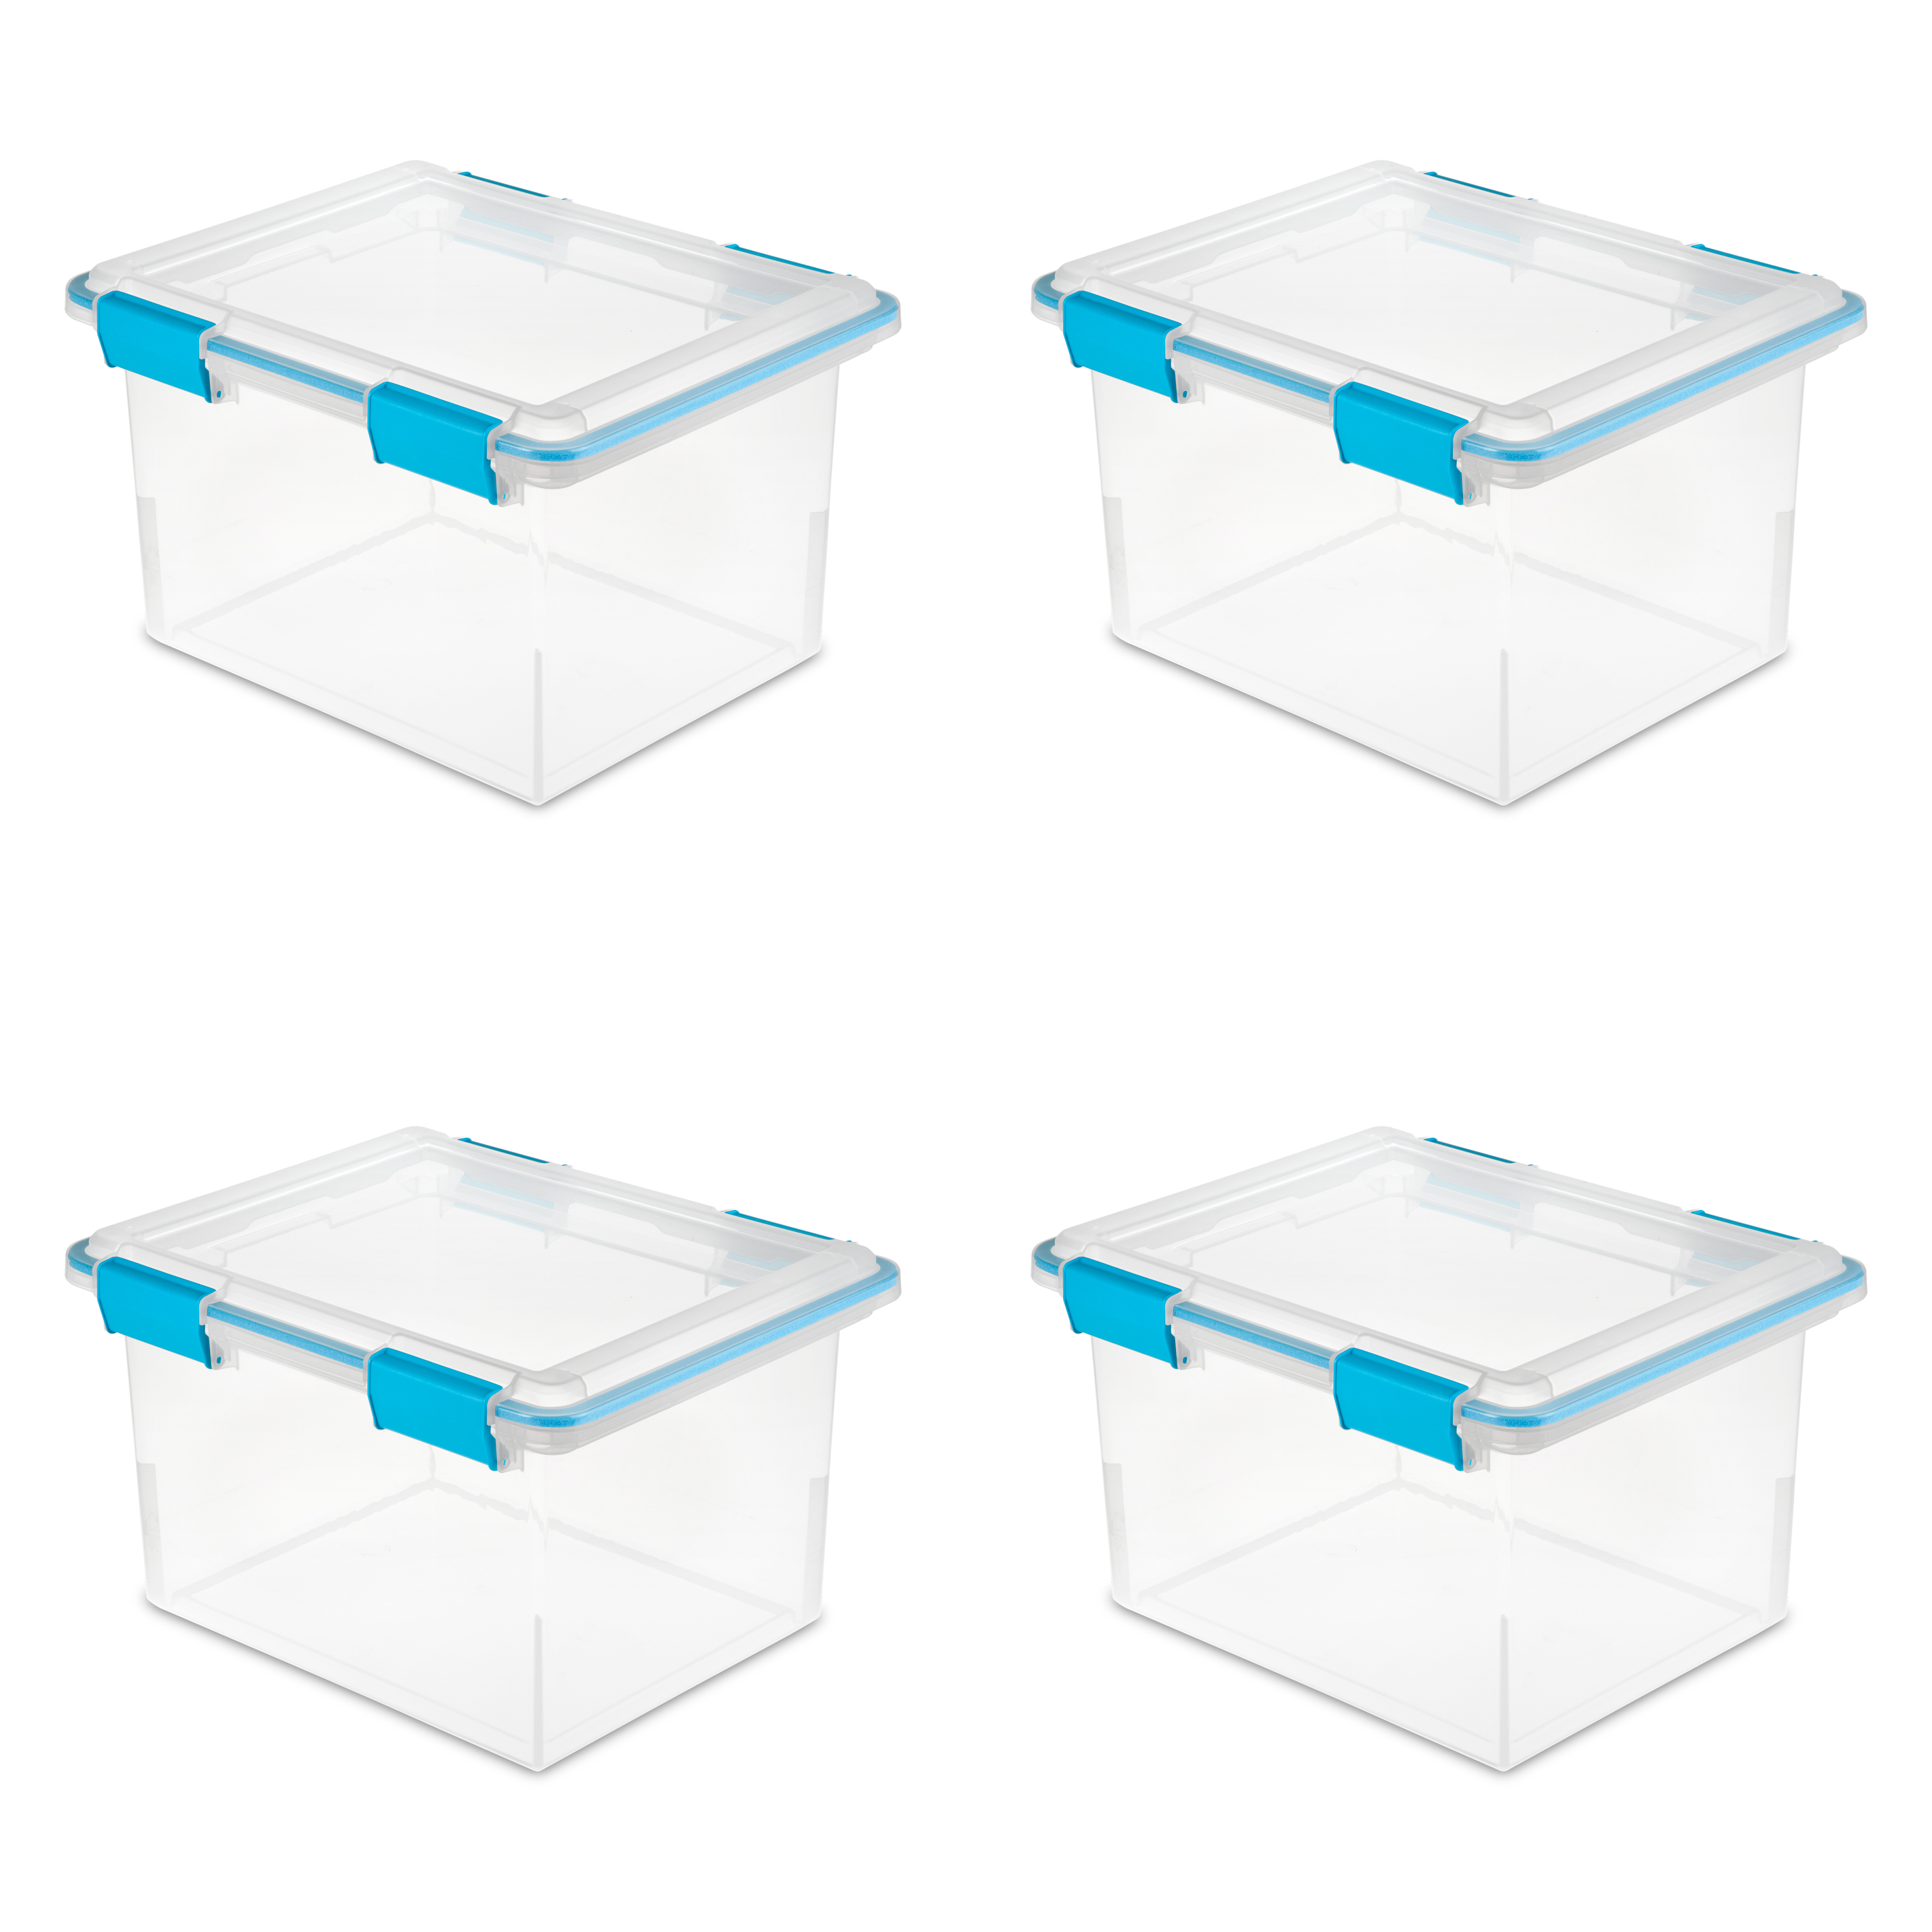 Sterilite 32 Qt./30 L Gasket Box, Blue Aquarium (Case of 4)